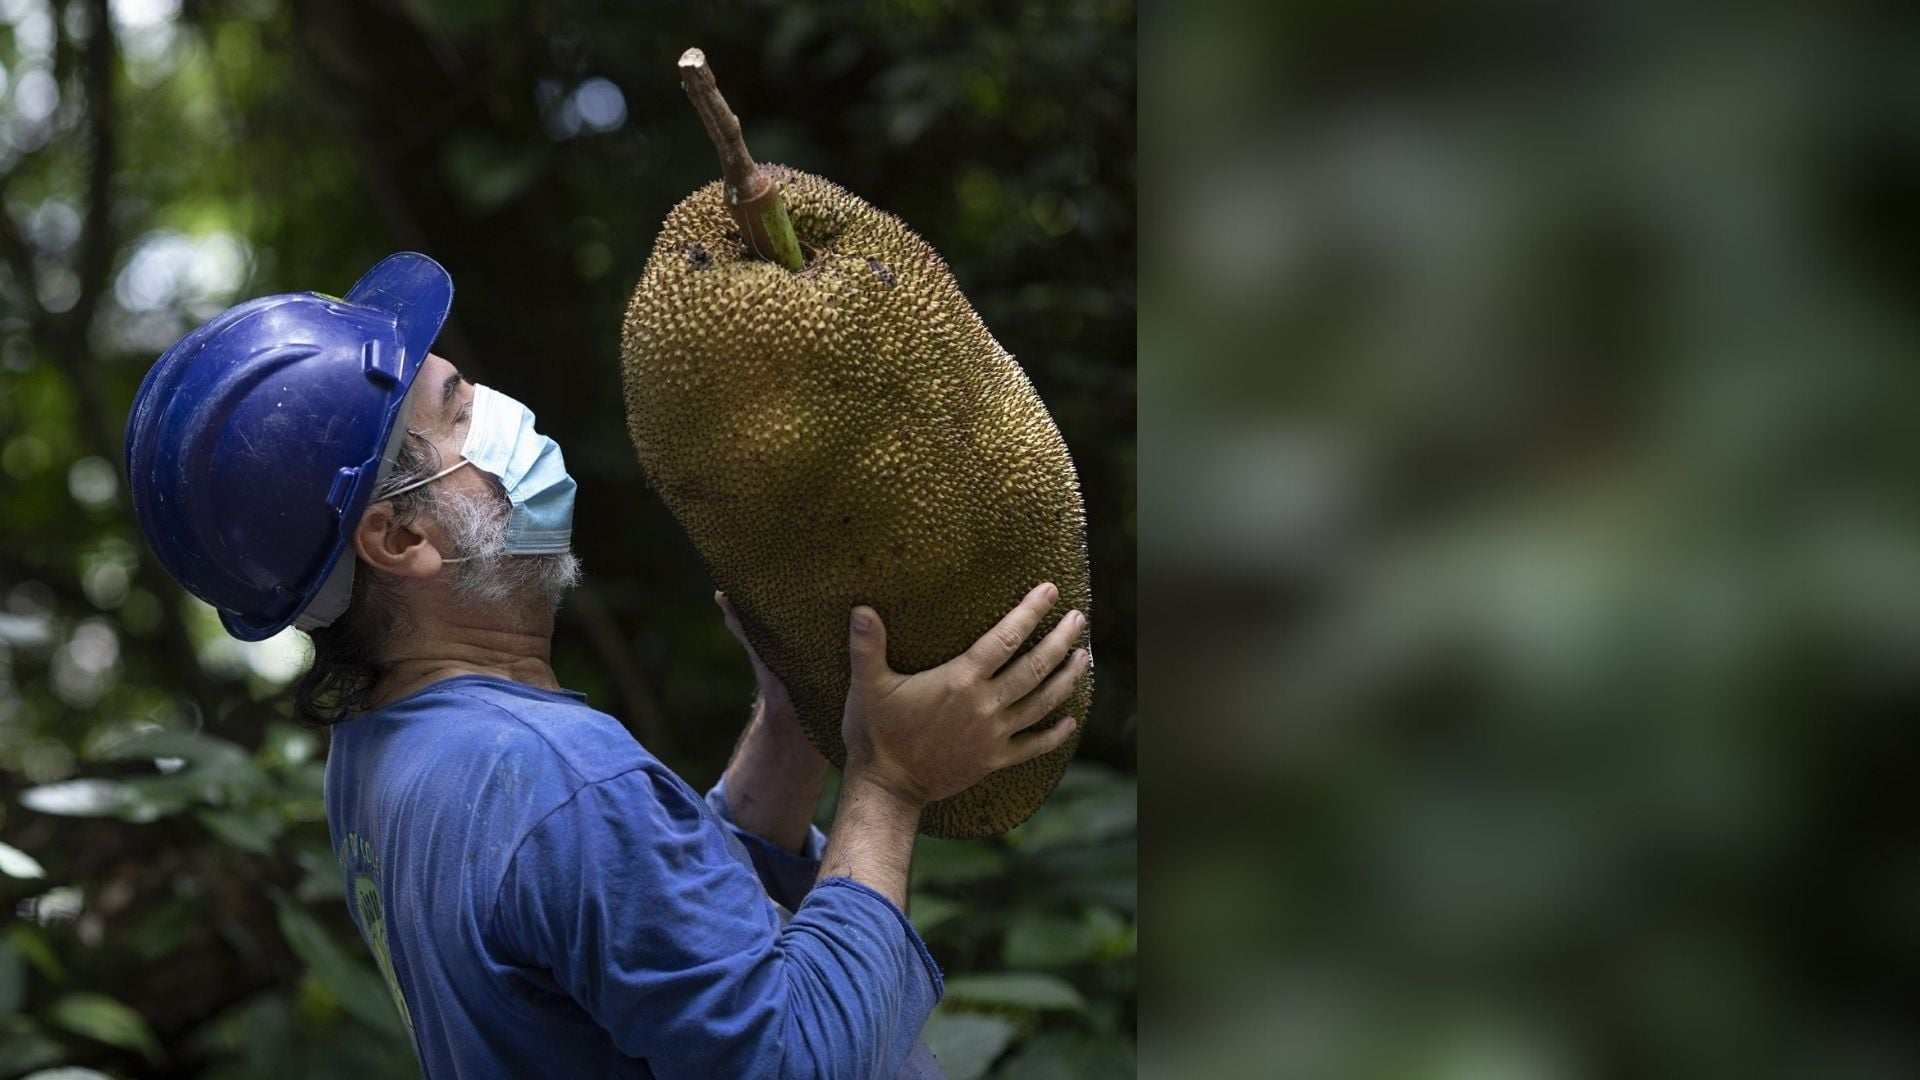 In Brazil, world's largest tree-borne fruit is either danger or delight: Journey of the jackfruit in southern hemisphere